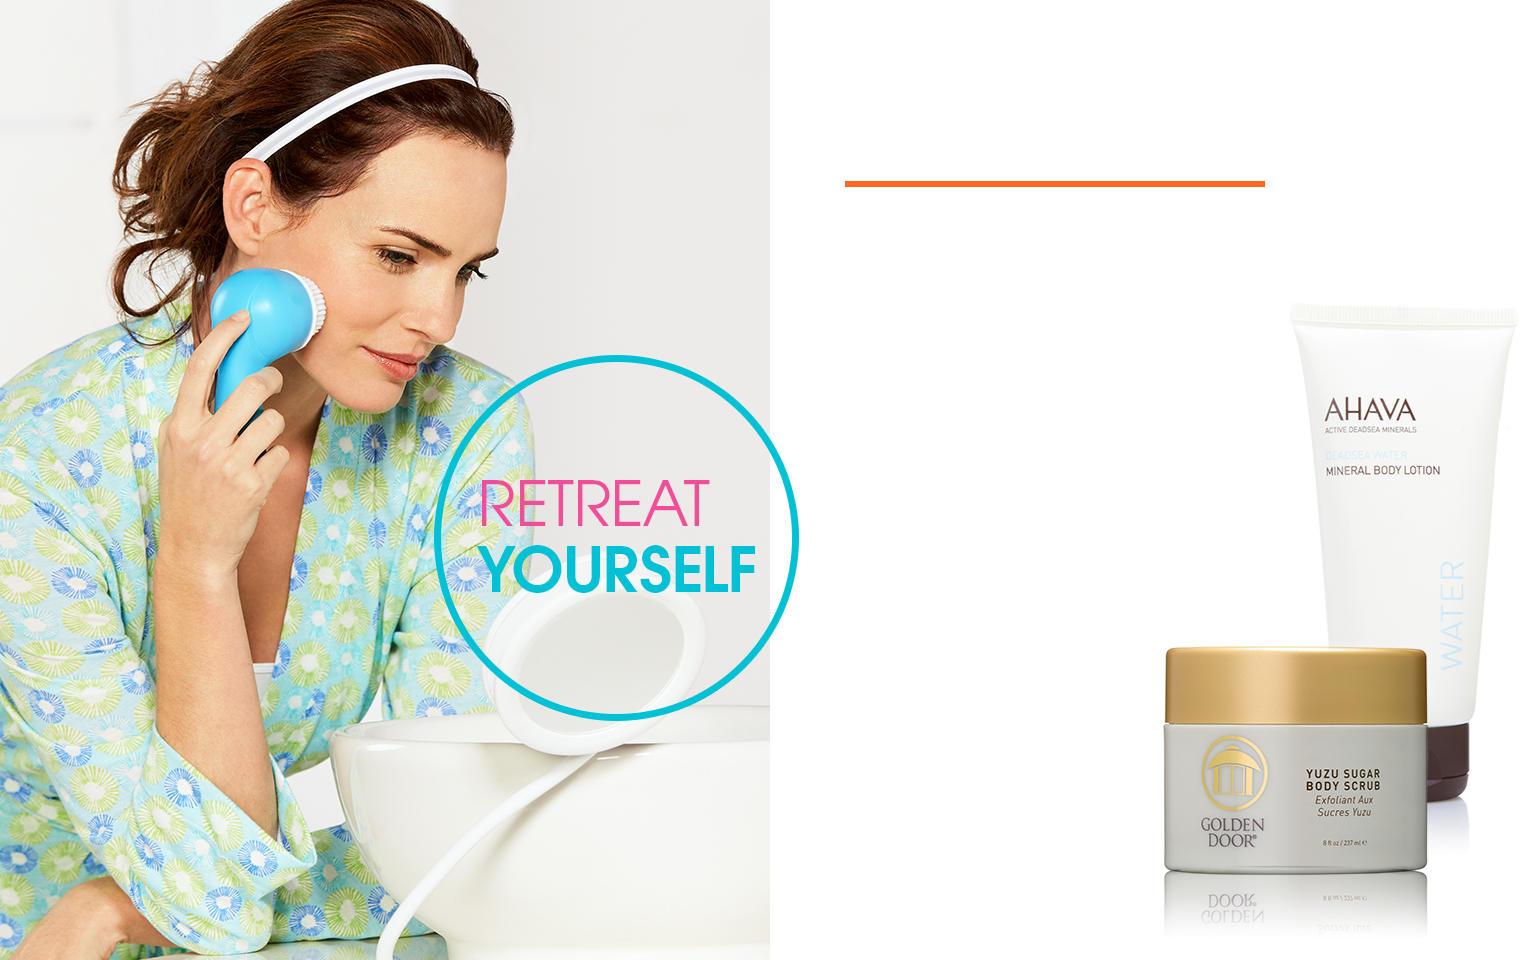 Retreat Yourself. Spa at home with botanical skin care & artisanal foods.